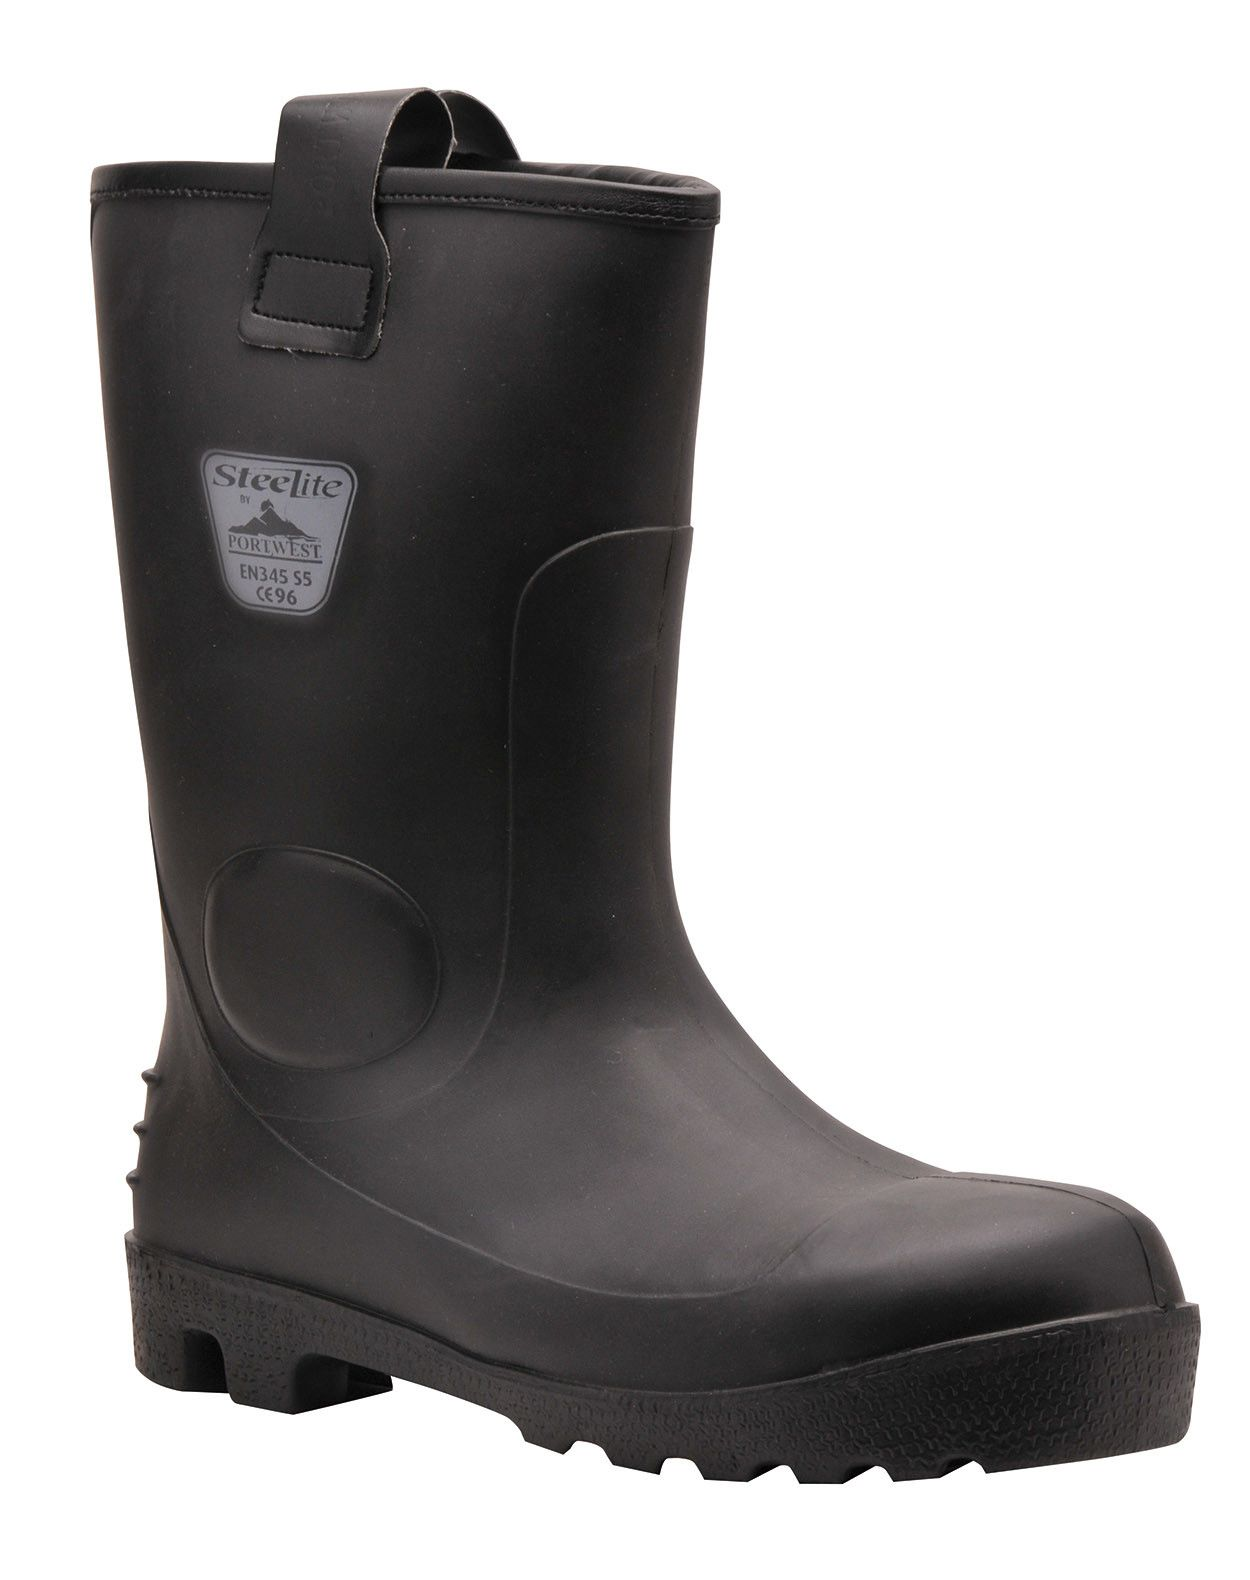 d4370048b2c Portwest FW75 Neptune Rigger S5 - Rigger Boots - Mens Safety Boots ...